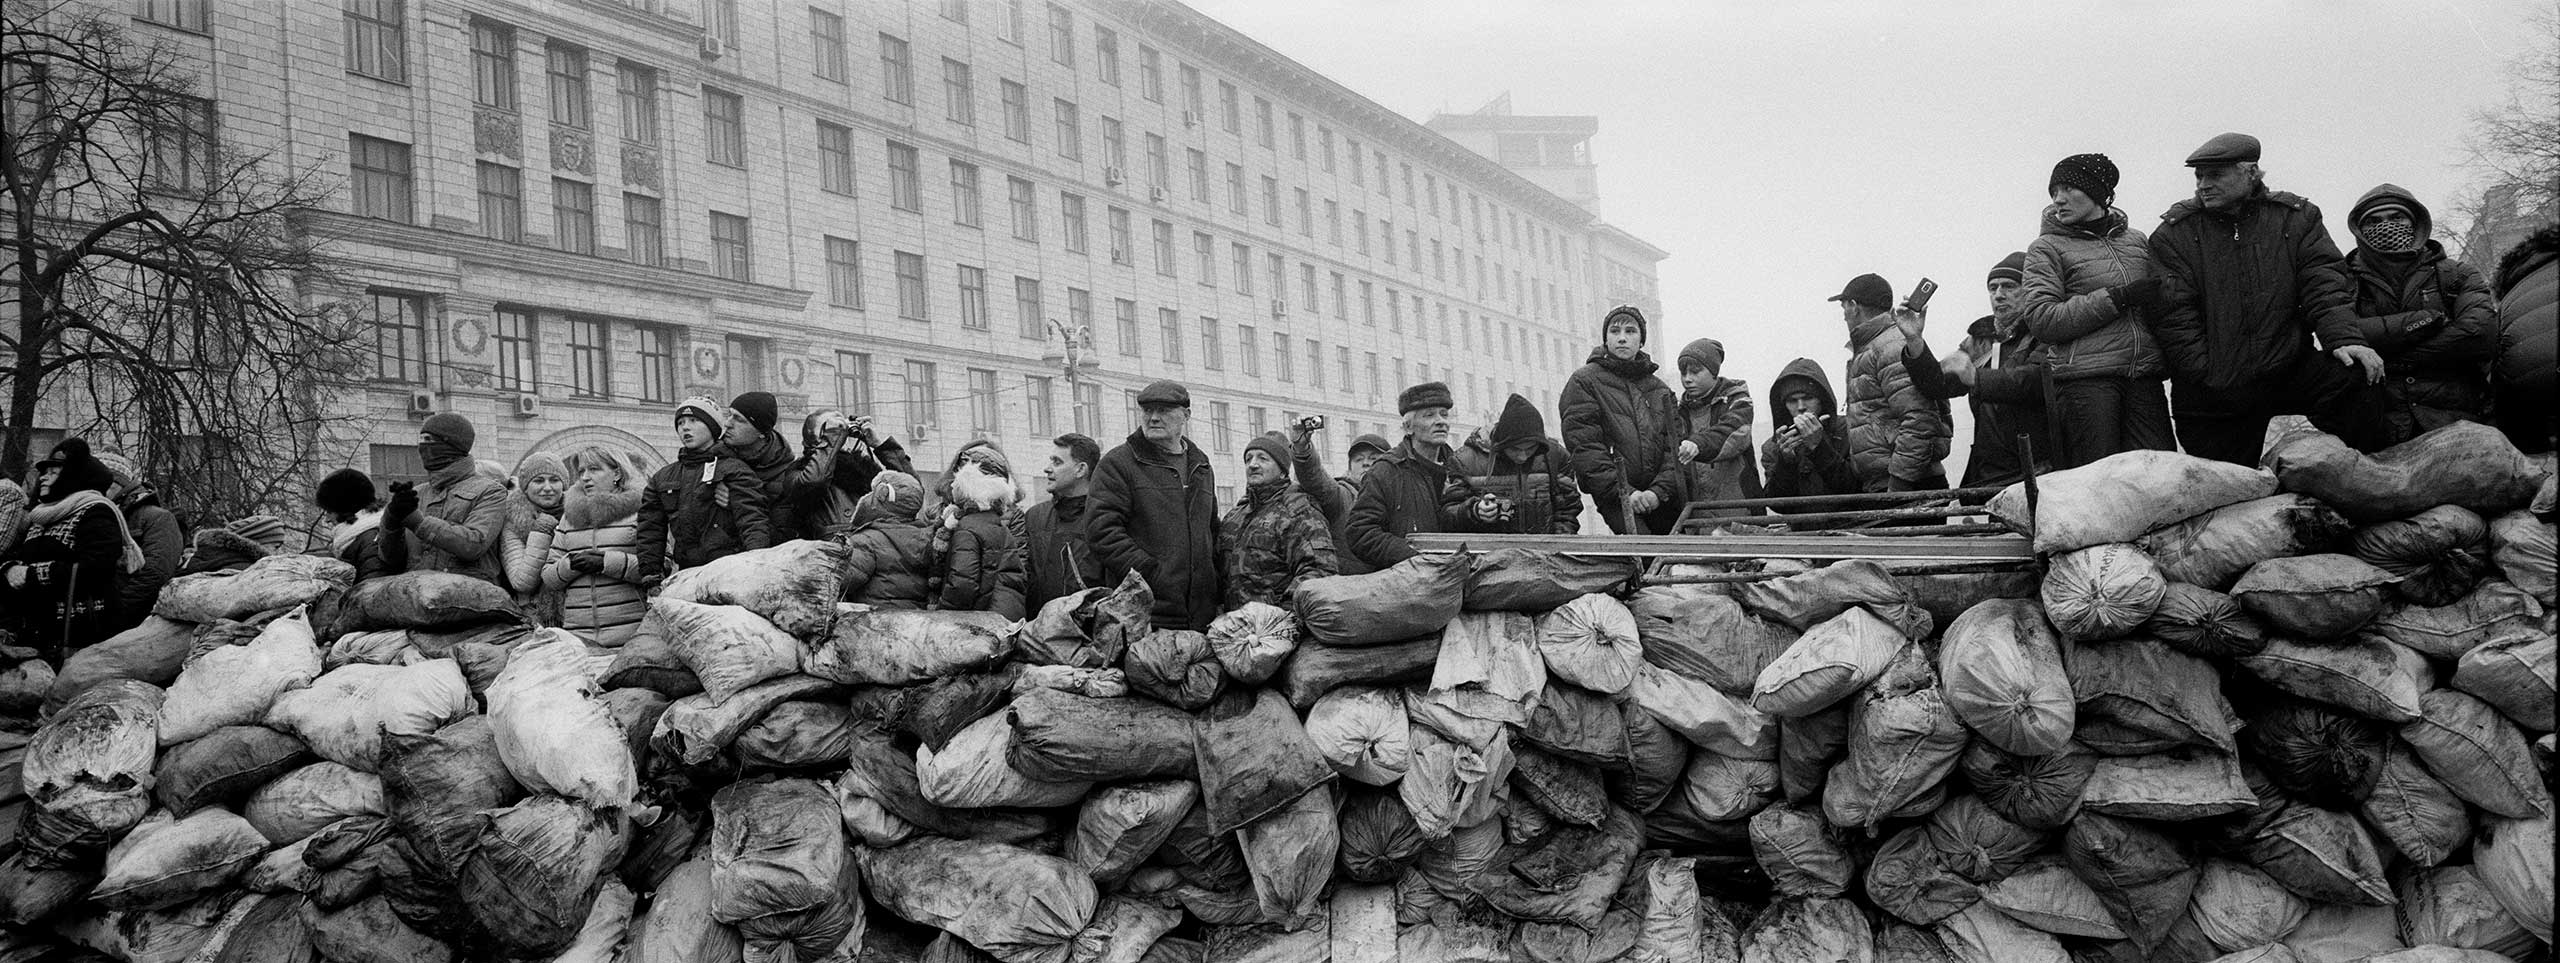 Ukrainian civilians stand behind a barricade as they watch at Riot police lines near the Maidan square in Kiev, 2014. From the                               series: Barricades, Kiev, Ukraine, 2014.